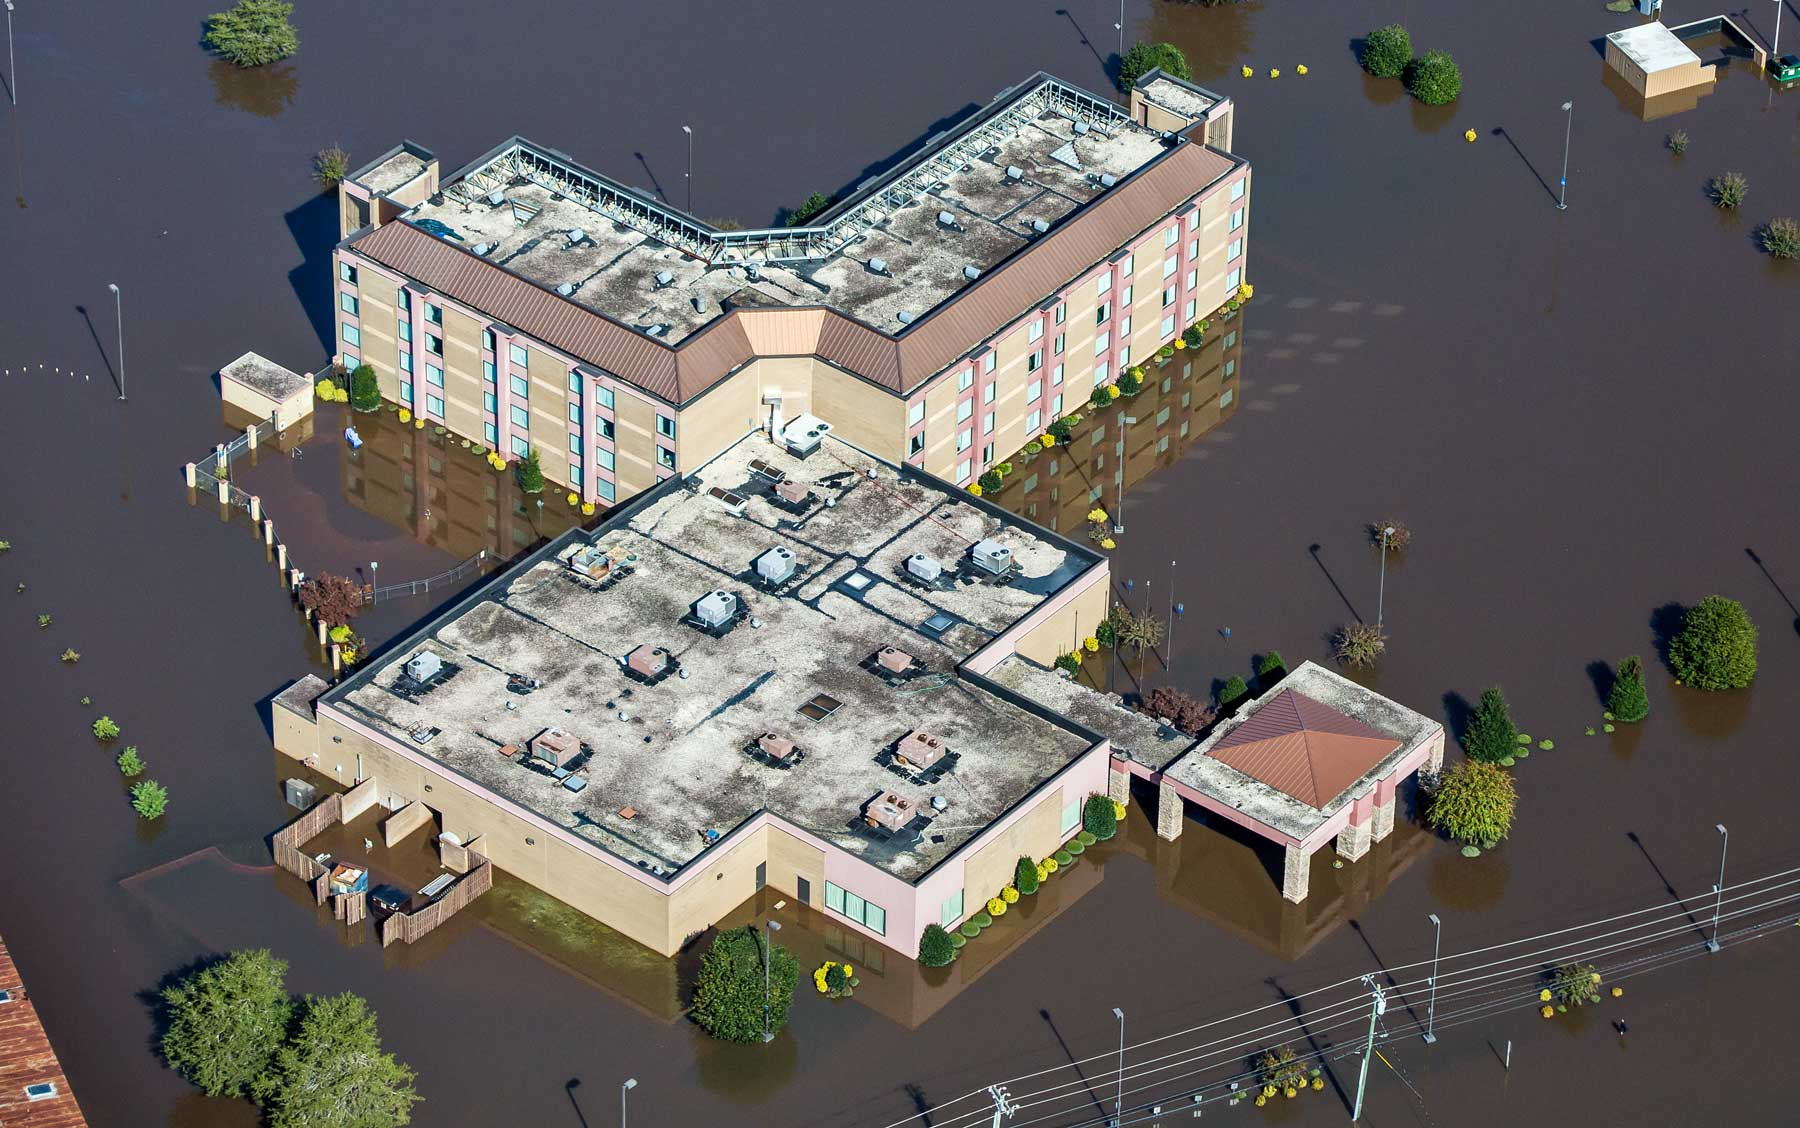 An aerial view of a flooded hotel in Kinston, N.C. (Julie Dermansky)